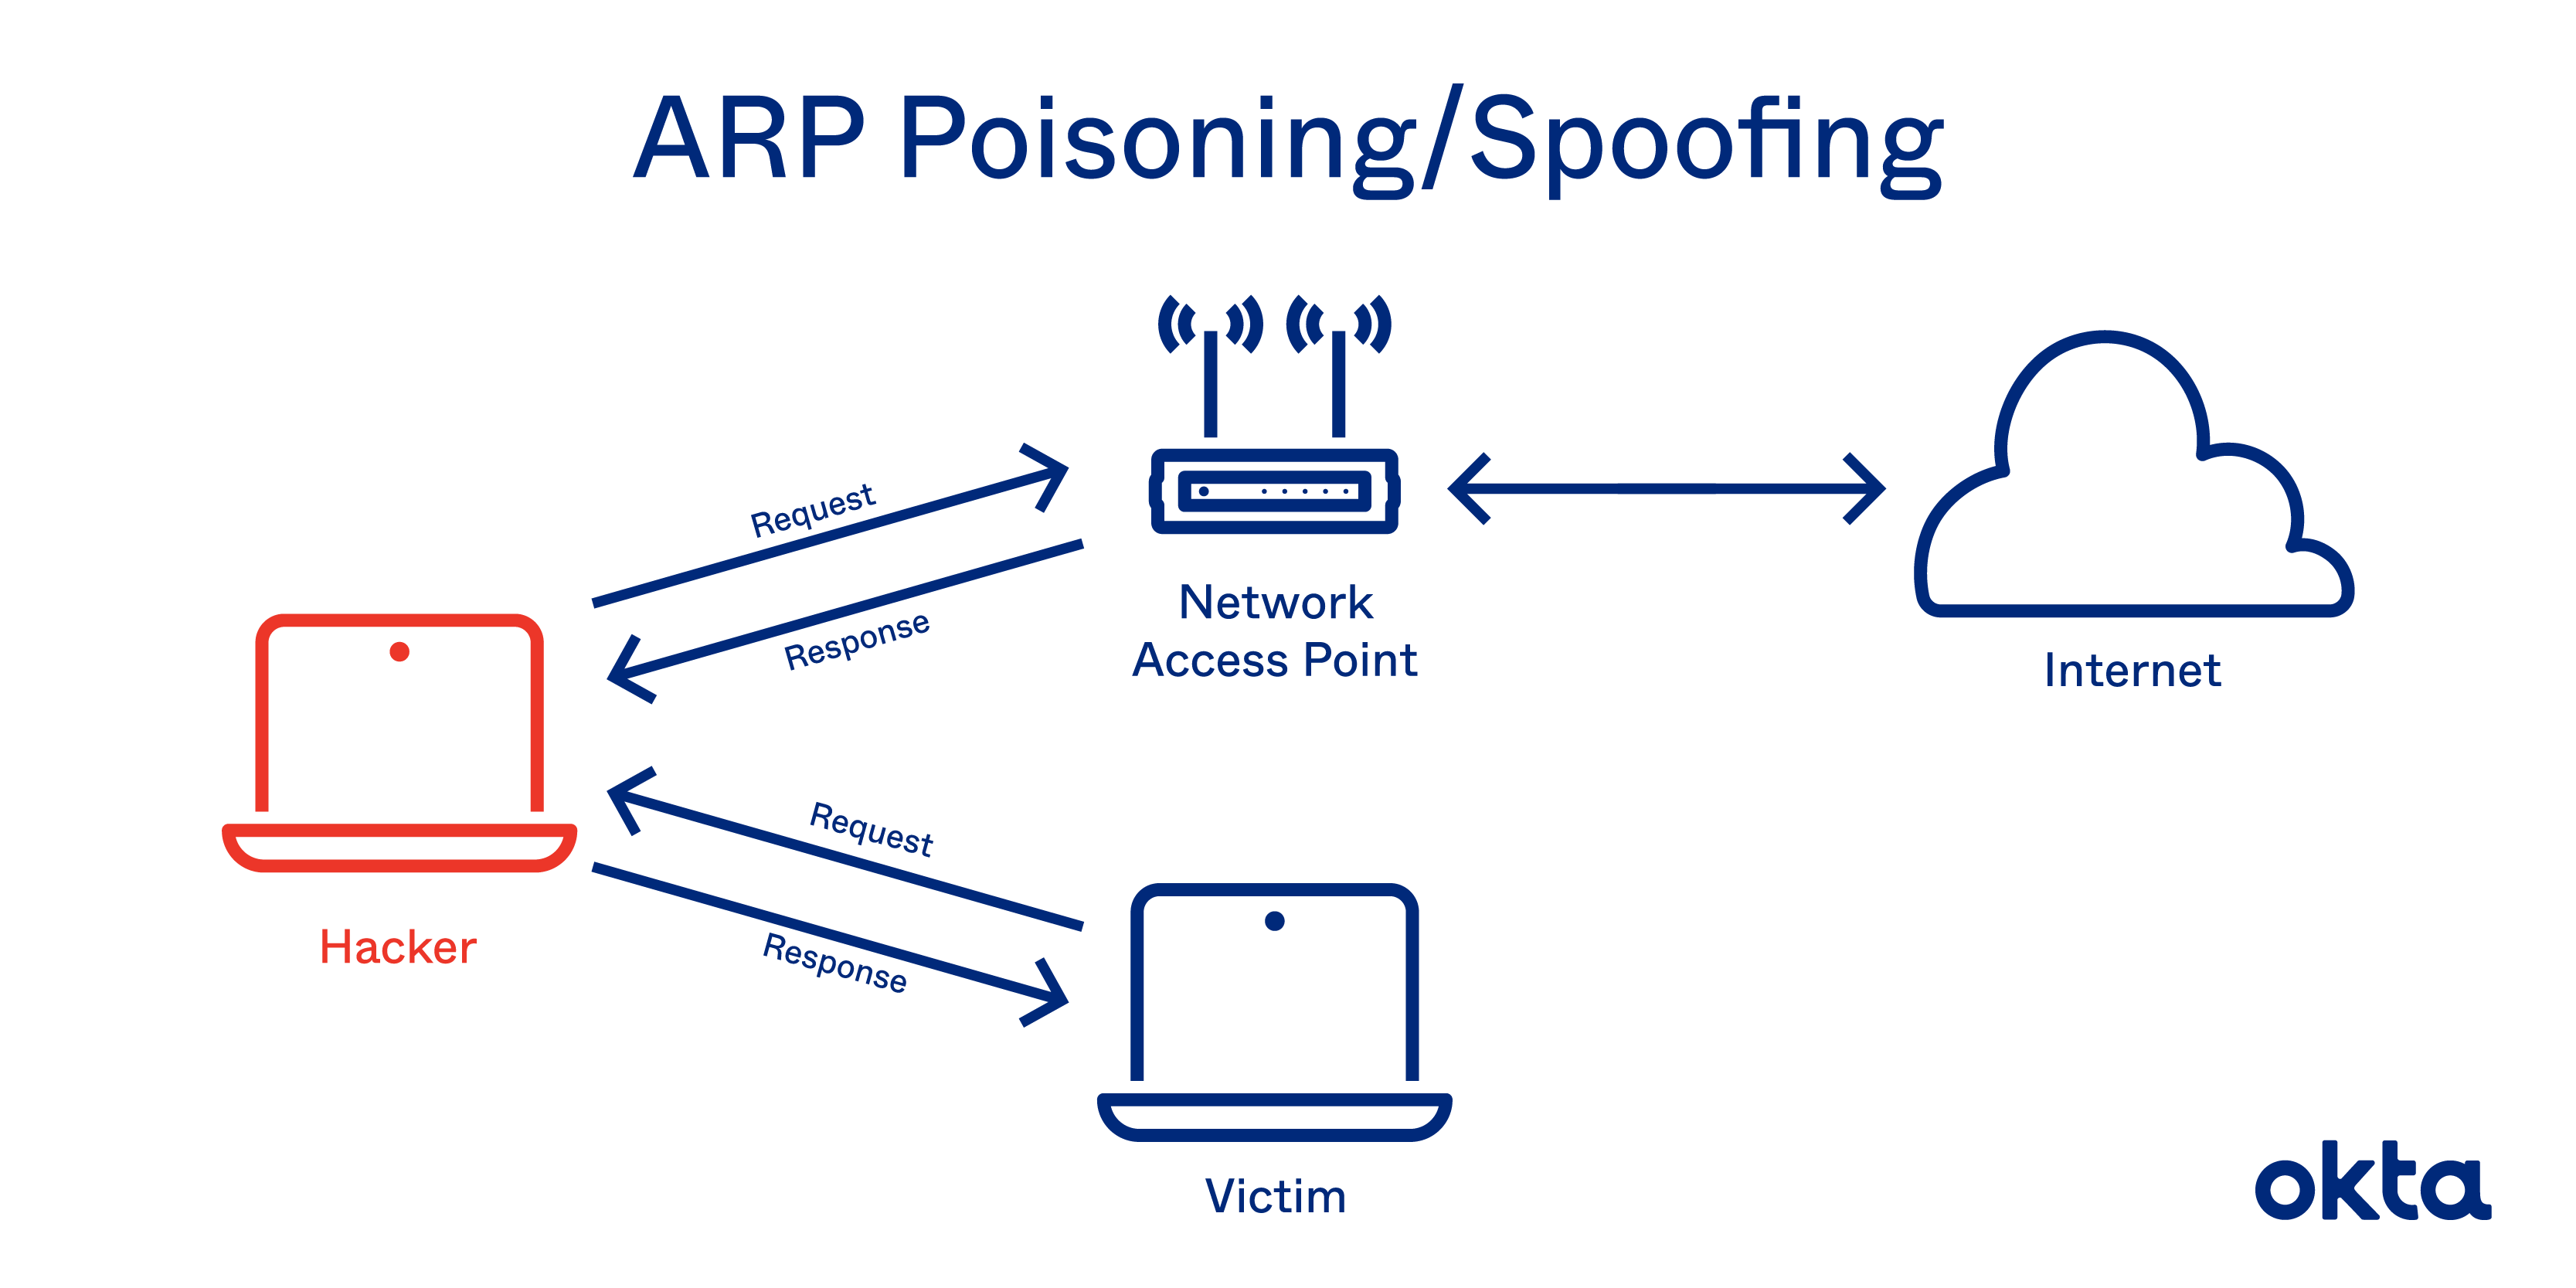 ARP Poisoning/Spoofing